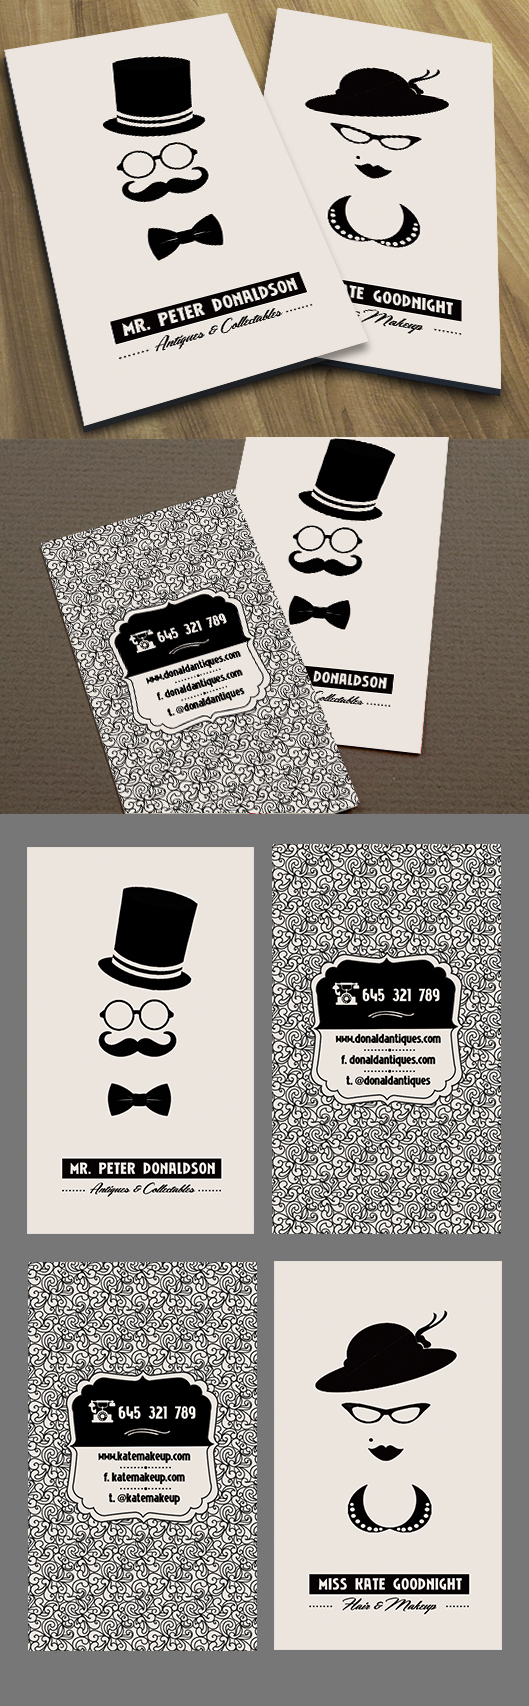 geek chic business cards